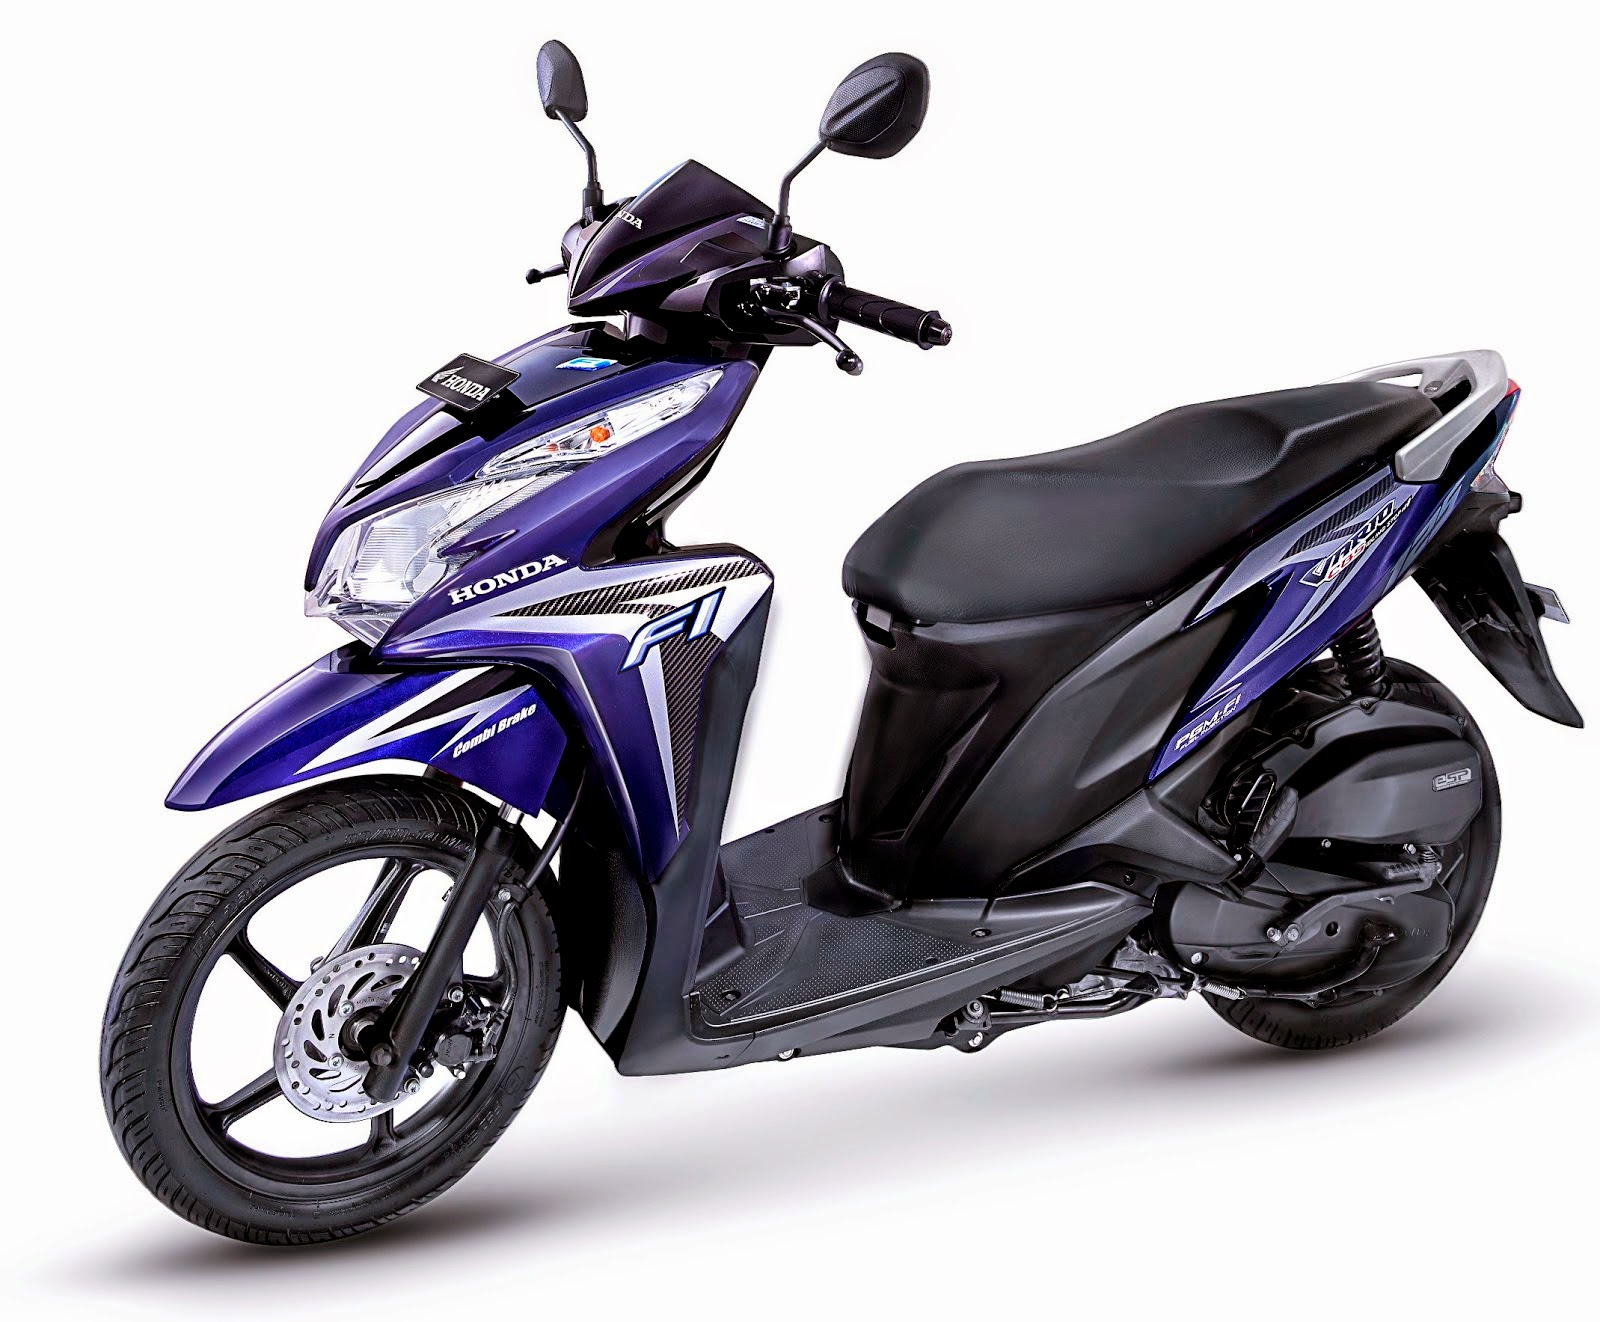 Foto Motor Honda Tiger 2015 via 1.bp.blogspot.com